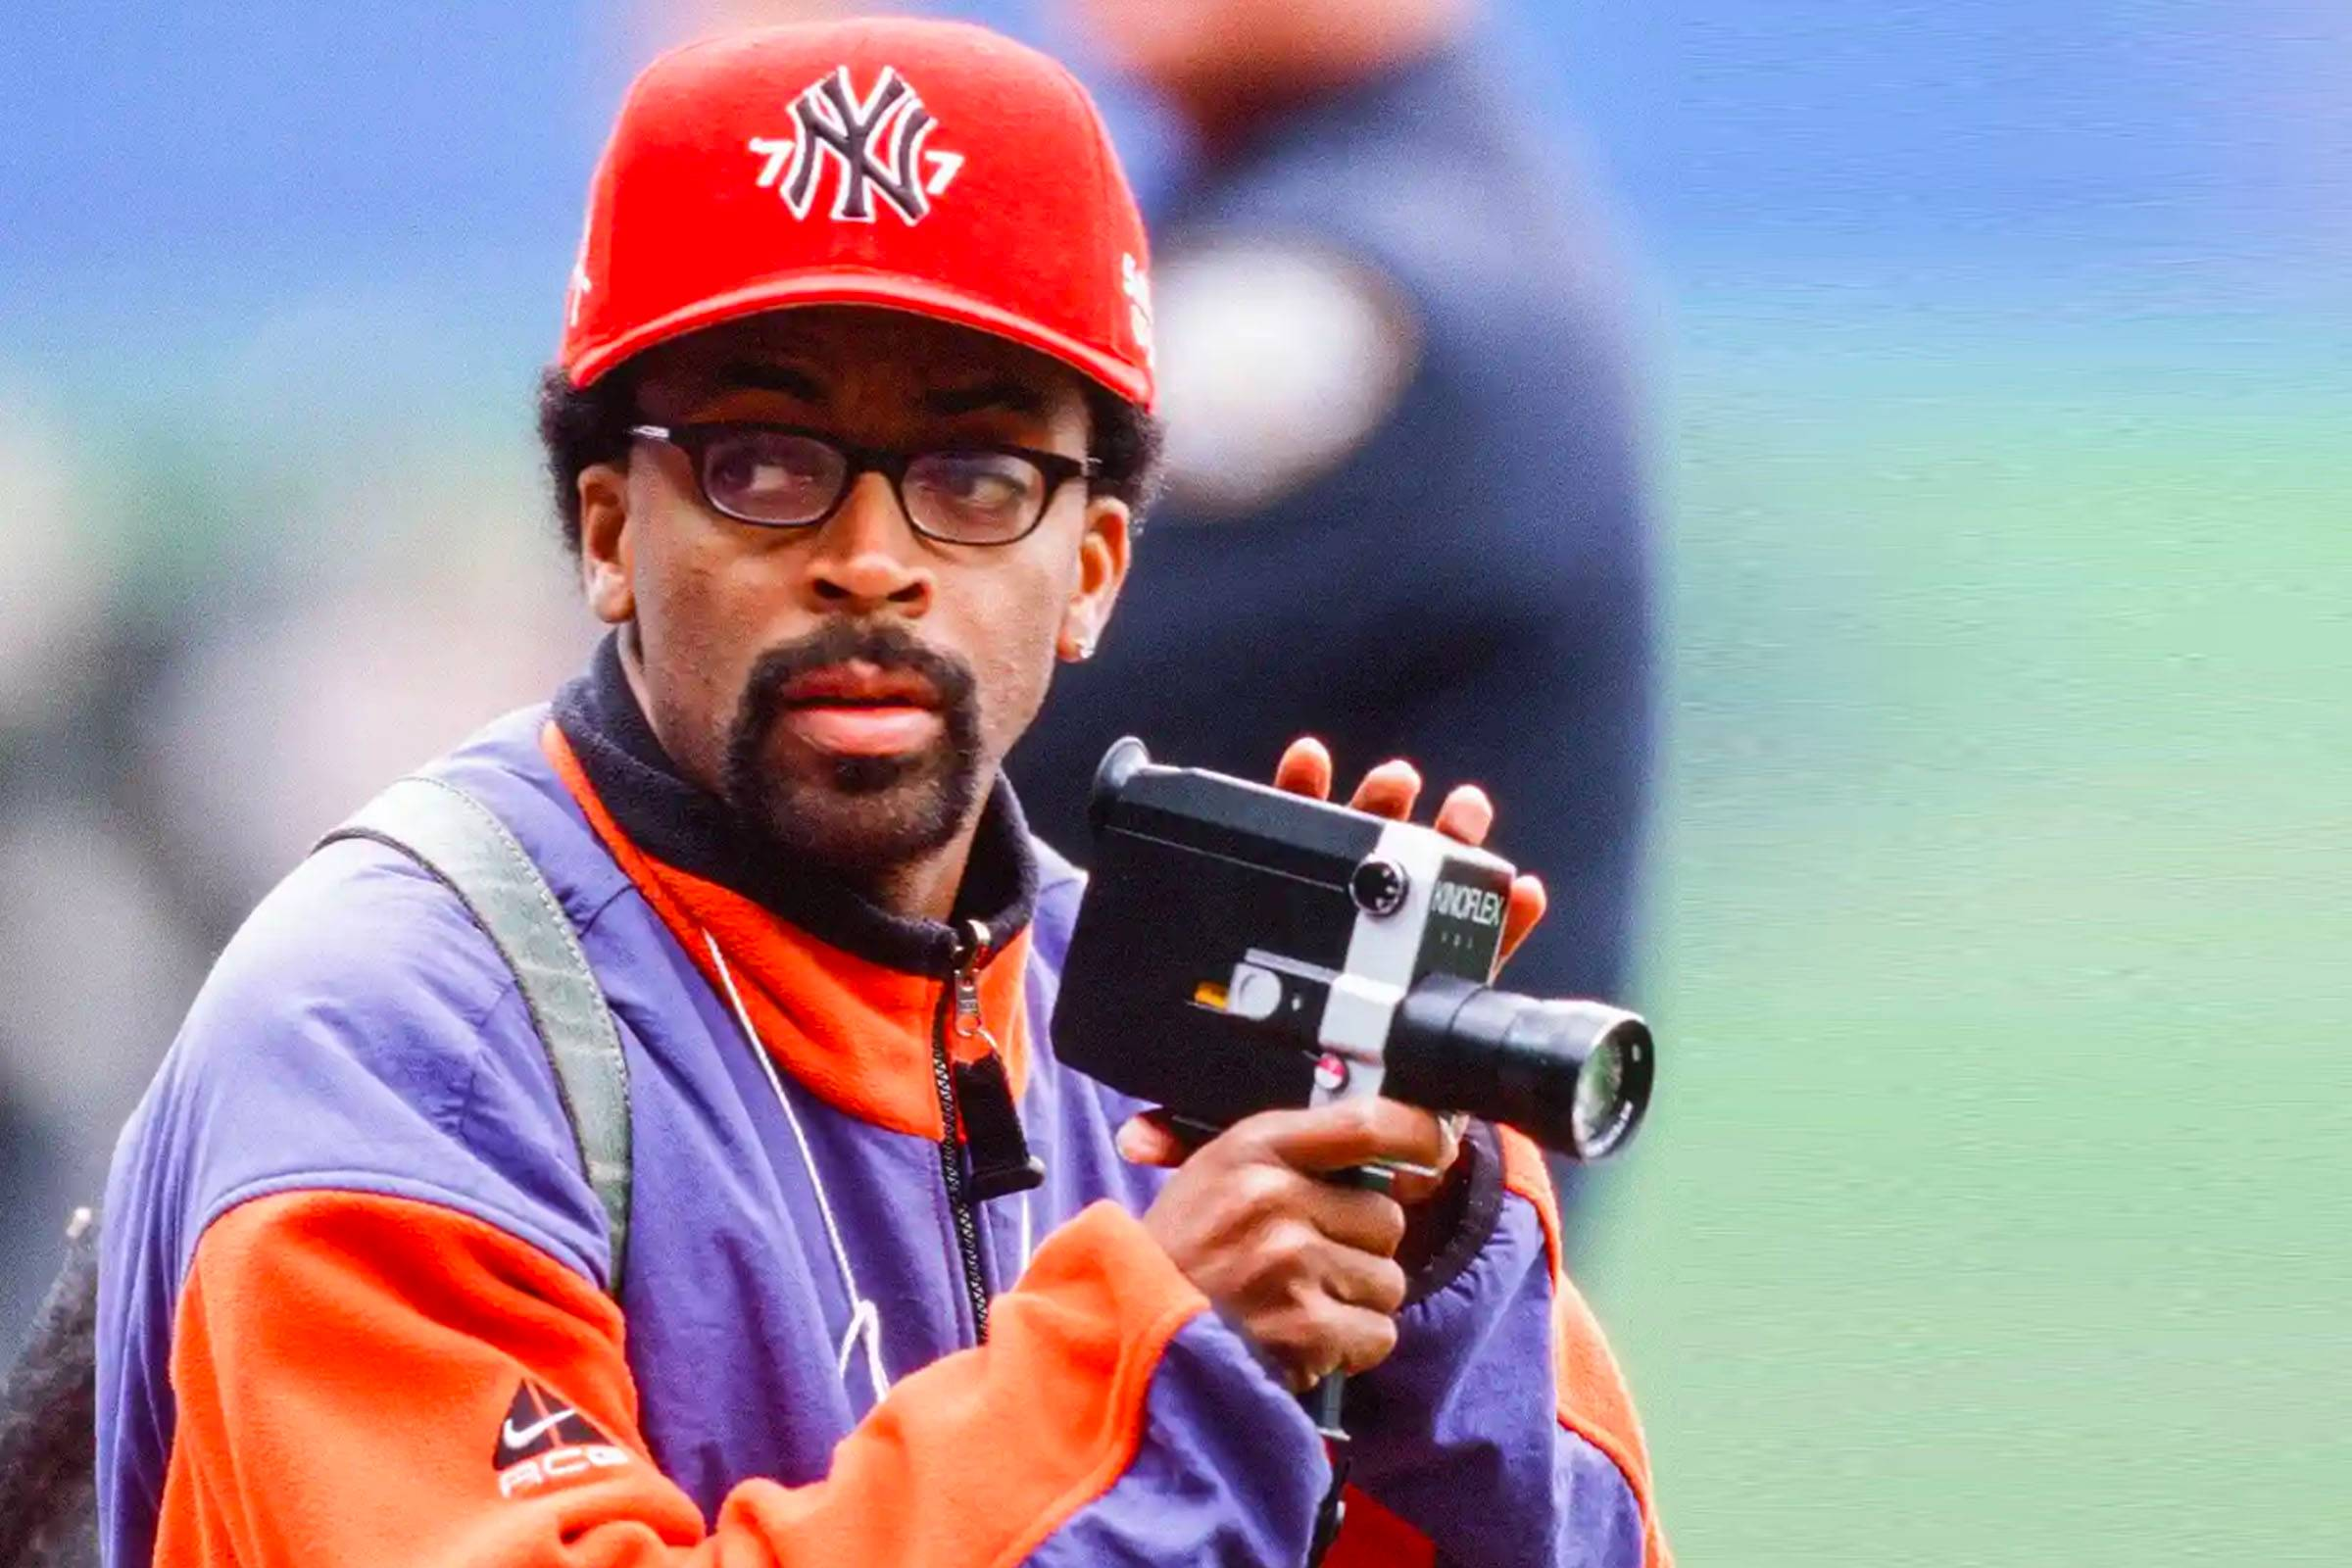 Spike Lee, Jay-Z and Seinfeld: The Yankees in Pop Culture